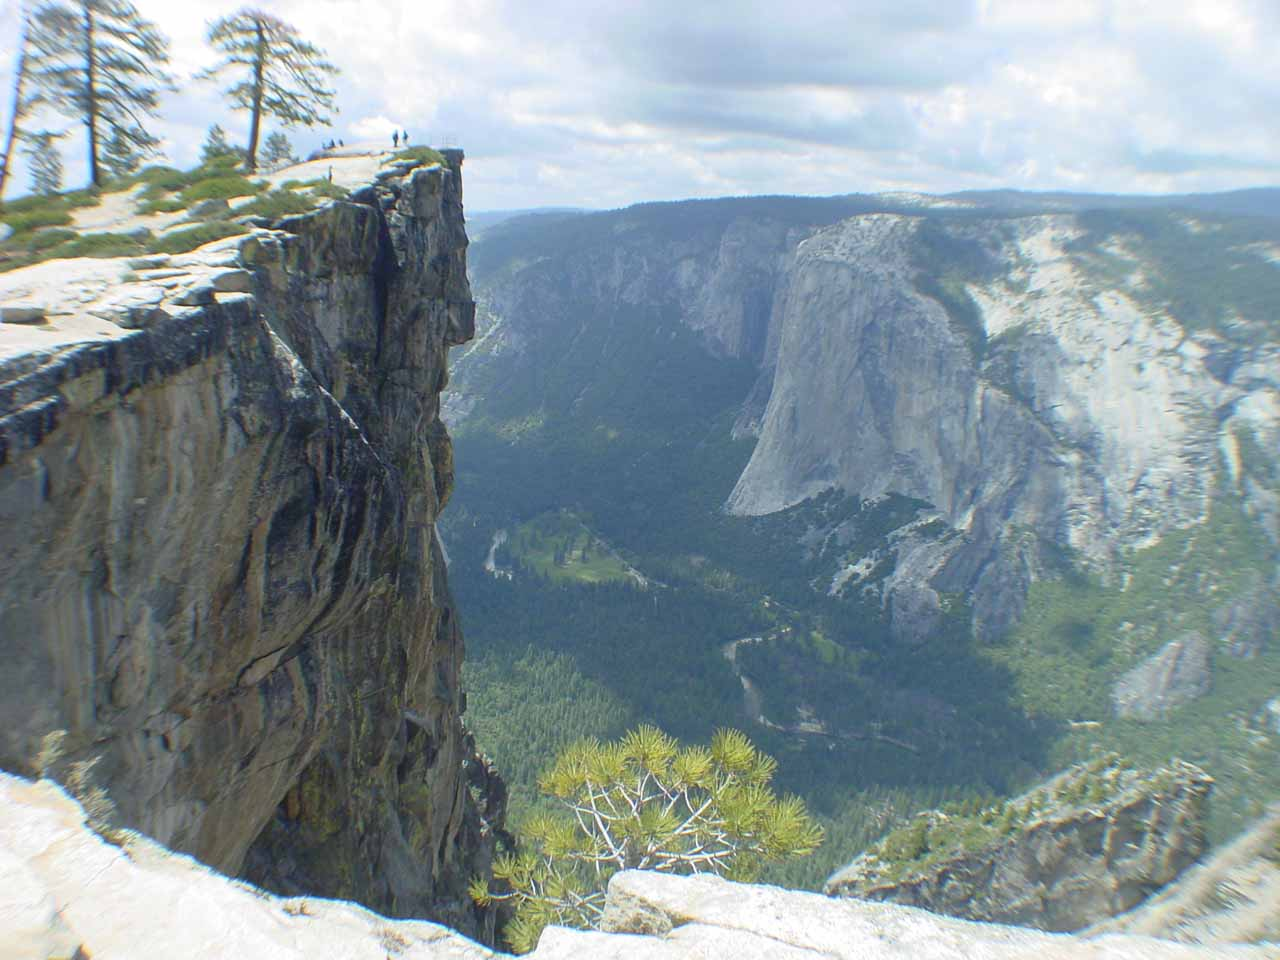 The vertical cliffs of Taft Point